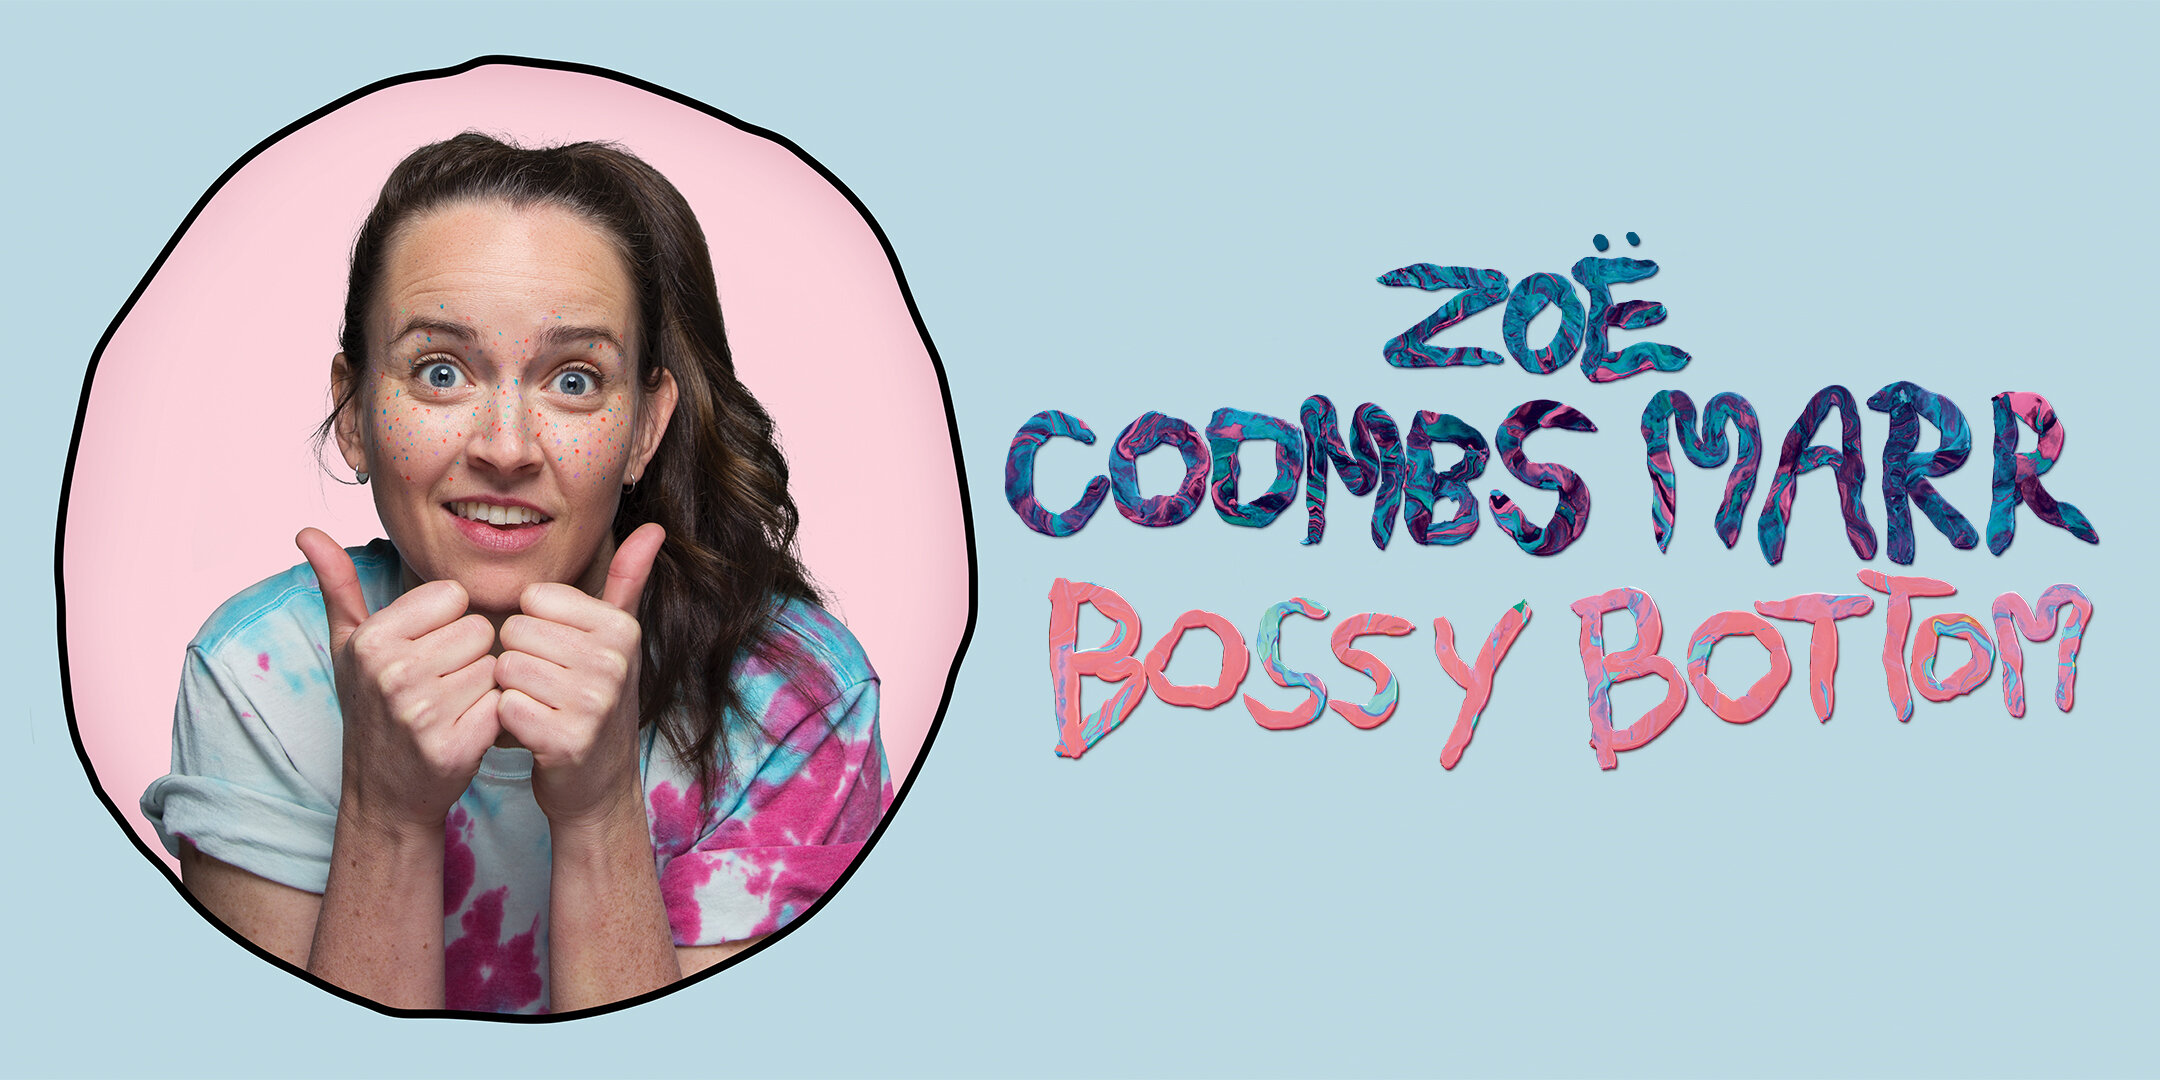 Hannah Gadsby presents ZOË COOMBS MARR – BOSSY BOTTOM — Dynasty ...